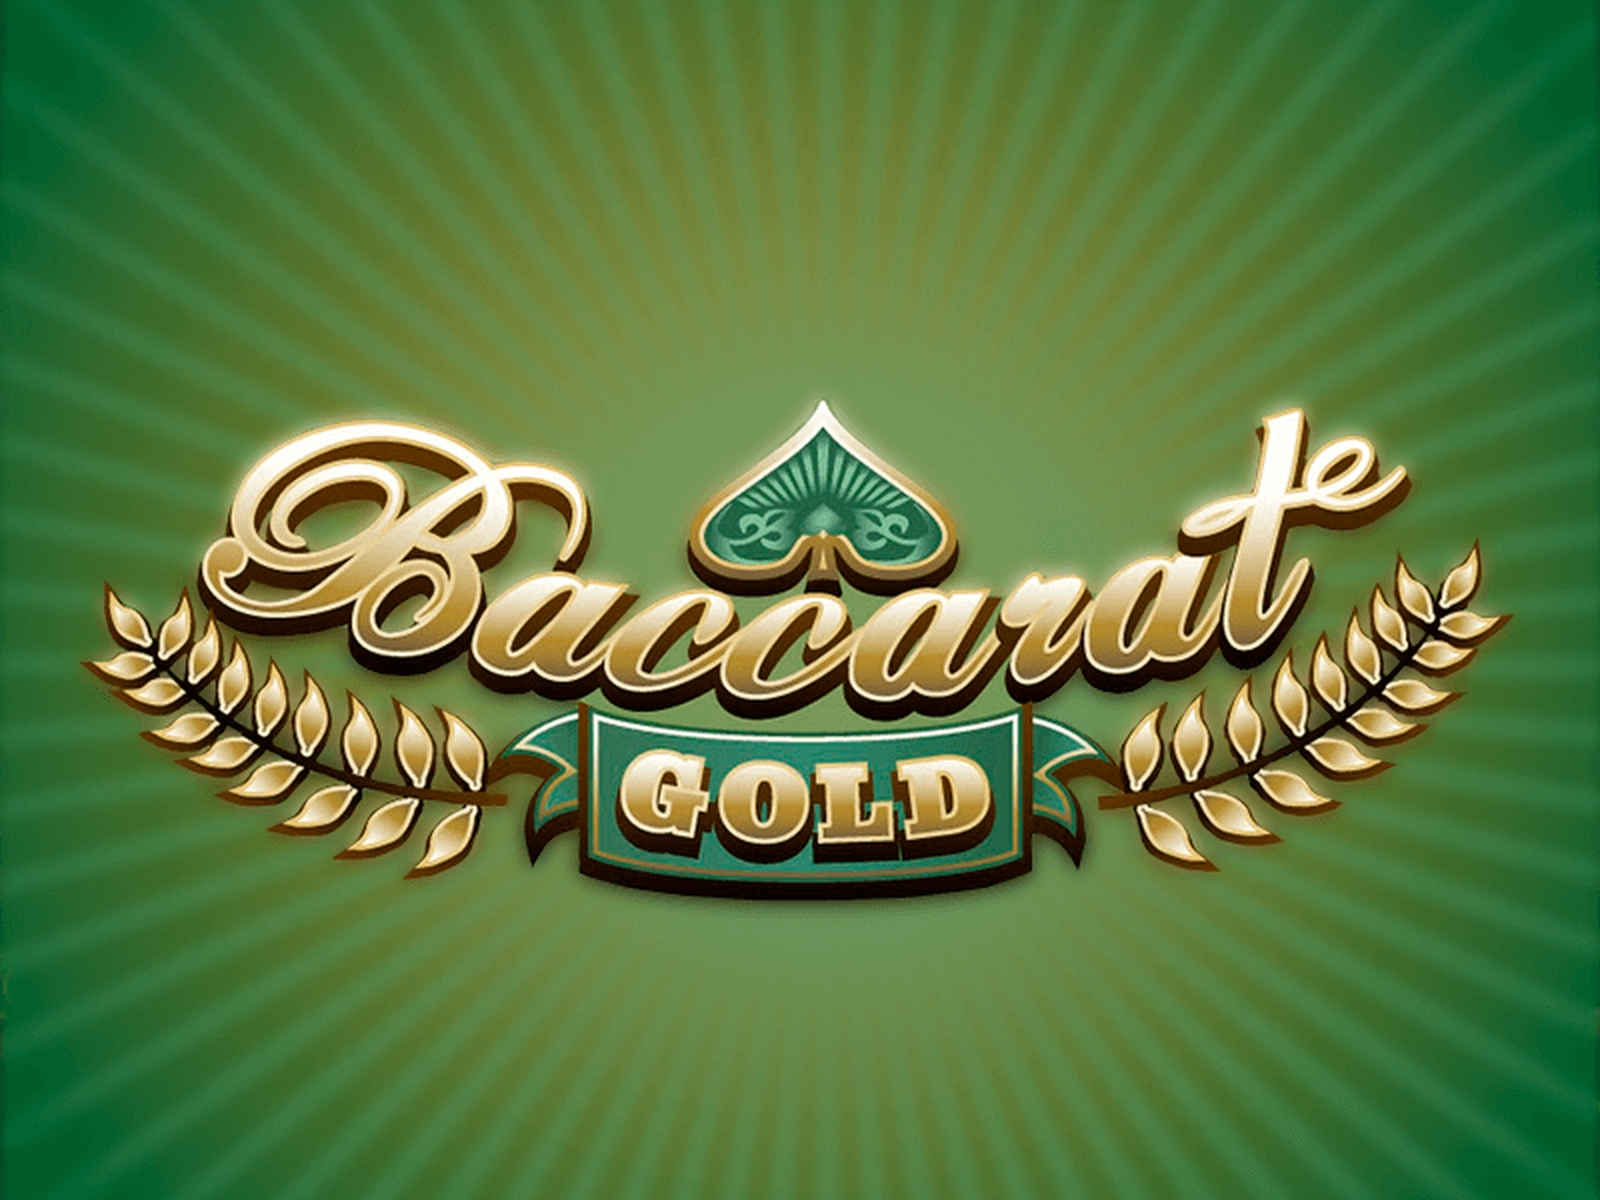 The Baccarat Gold (Microgaming) Online Slot Demo Game by Microgaming